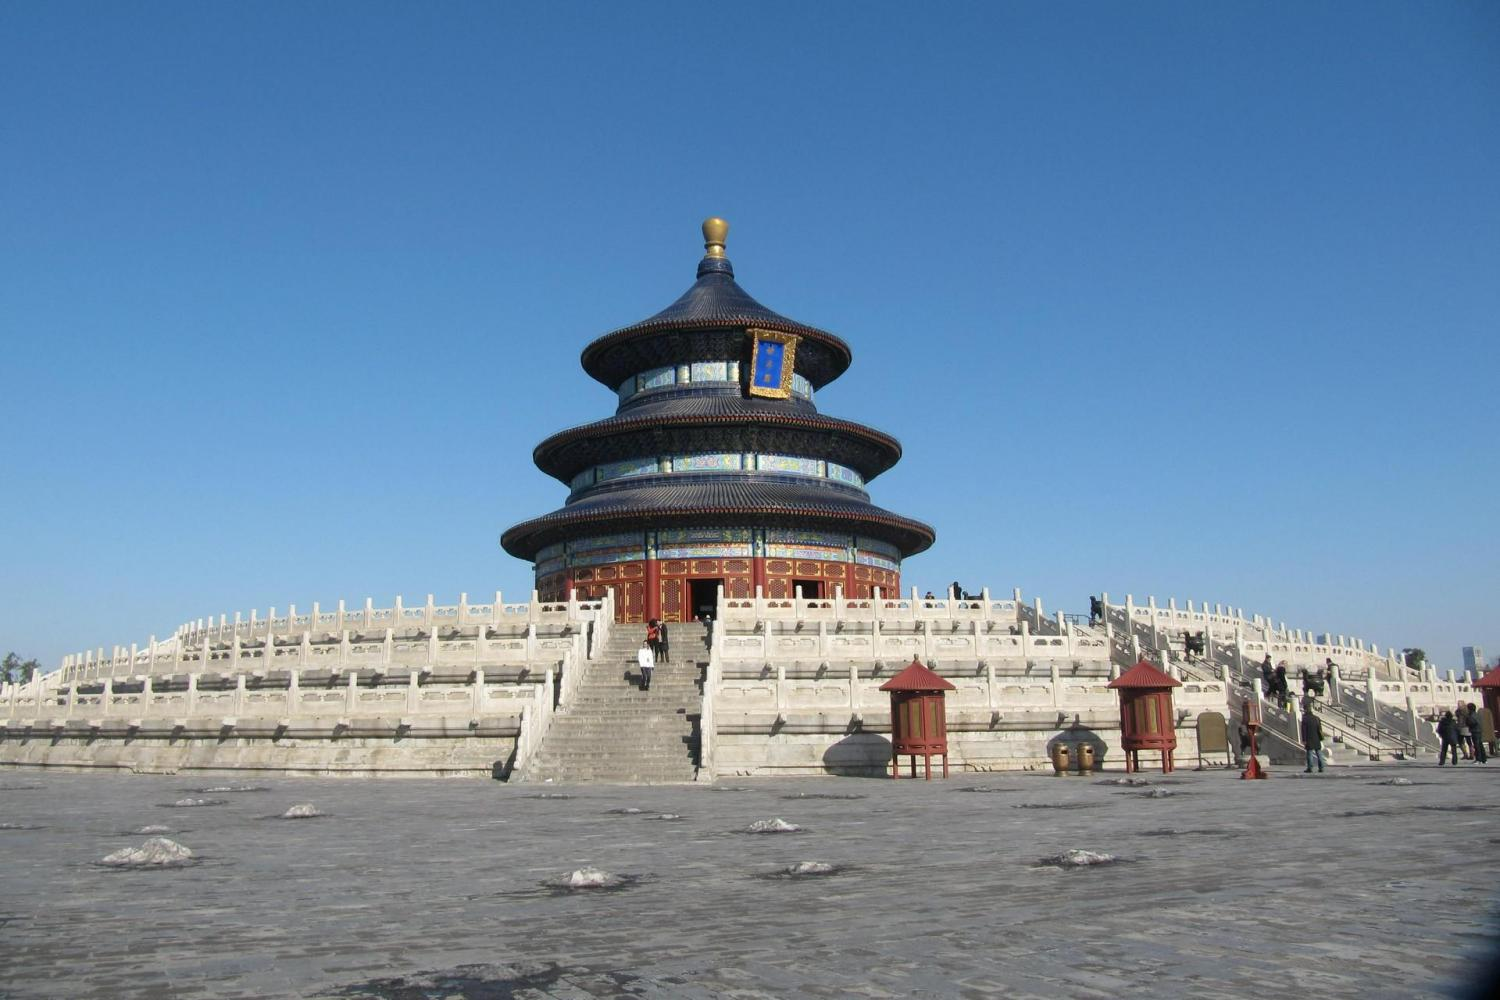 Journey to the breathtaking Temple of Heaven